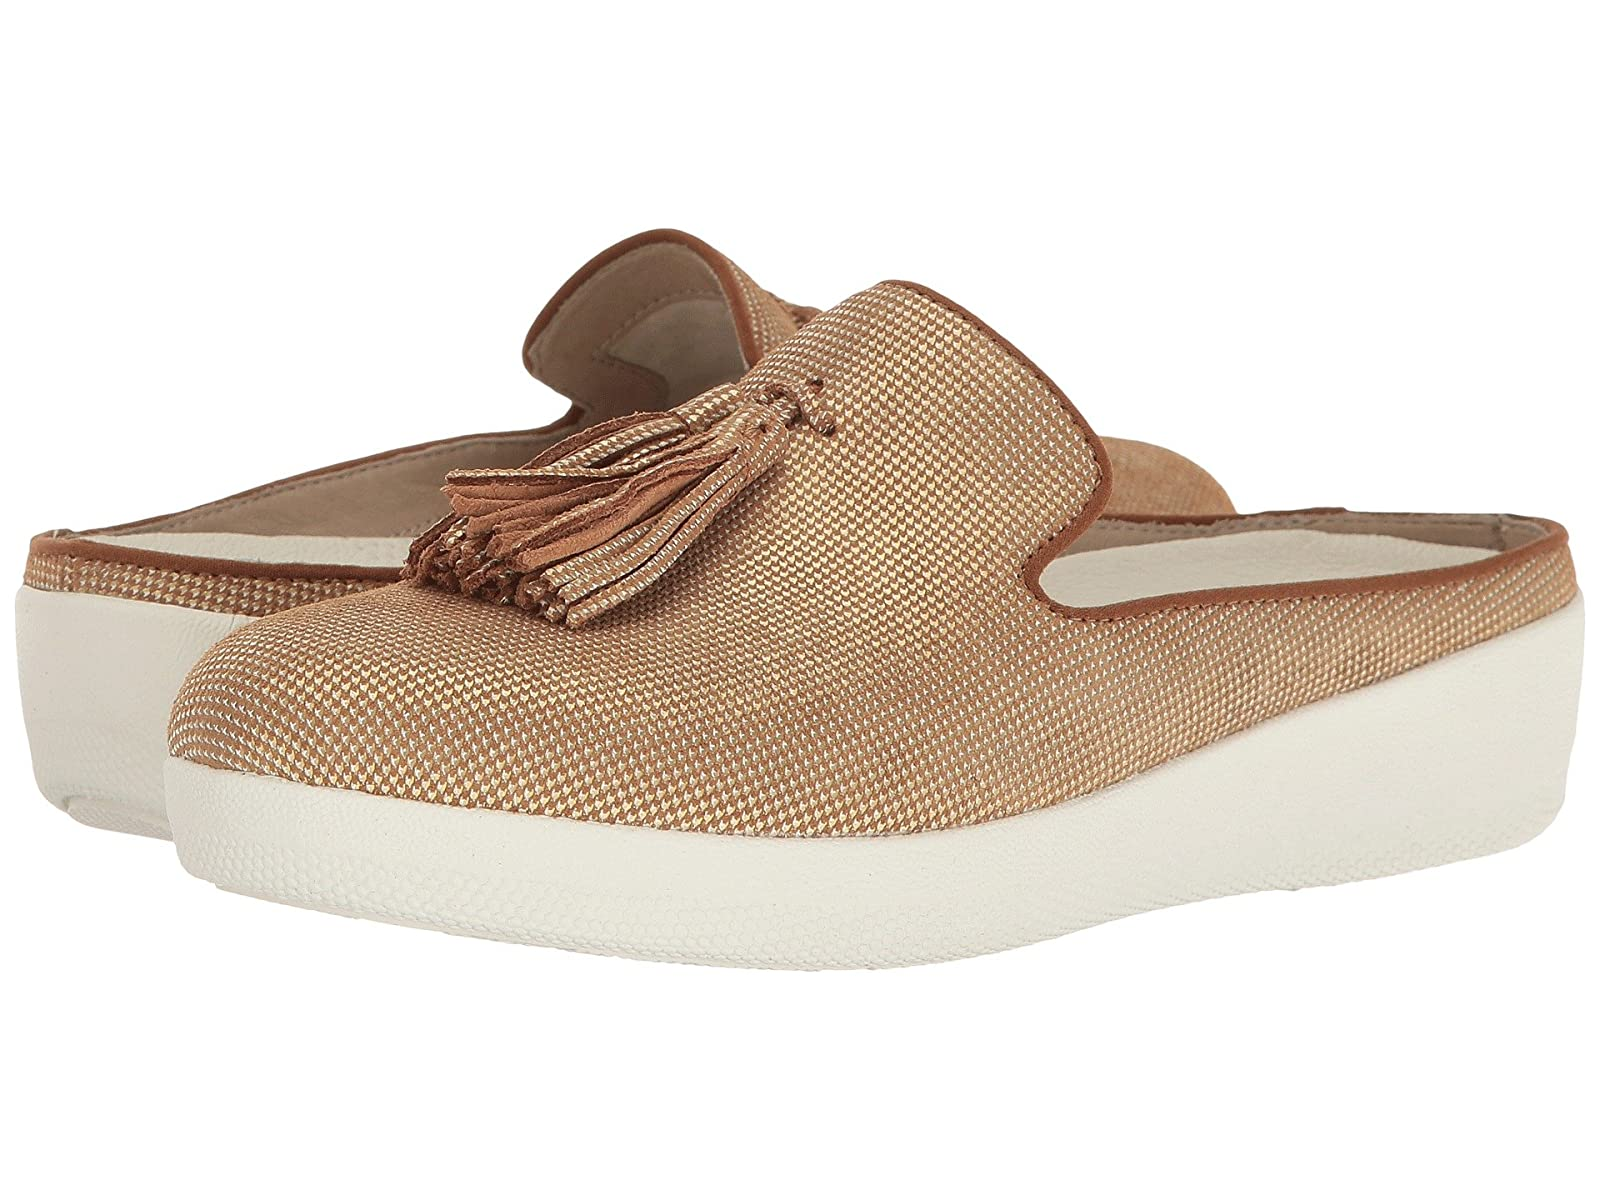 FitFlop - Houndstooth Print Superskate Slip-On - FitFlop Massive new -Man/Woman 0530cb